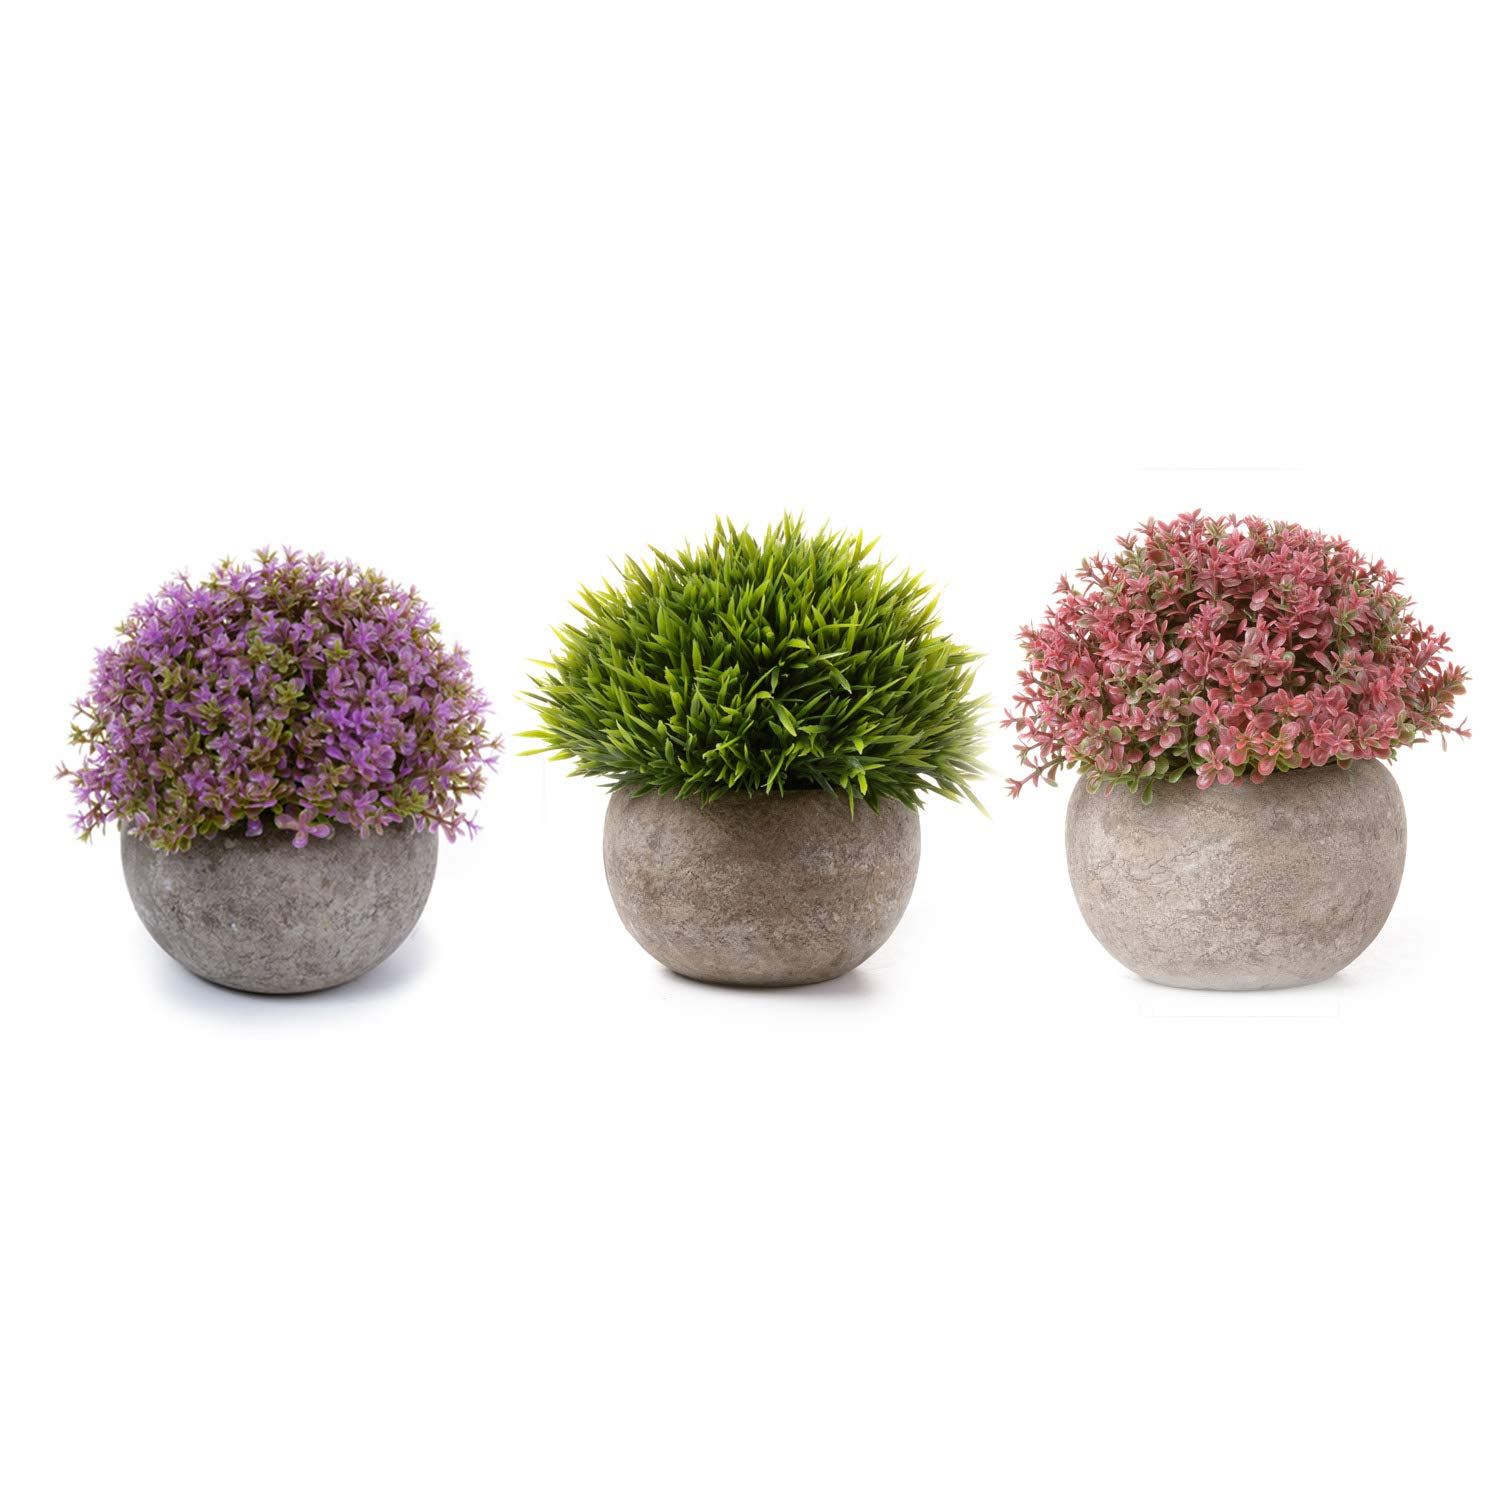 T4U Plastic Artificial Plants Fake Plants with Pots Decorative Colorful Lifelike Flower for Home/Office Decor Pack of 3 by T4U